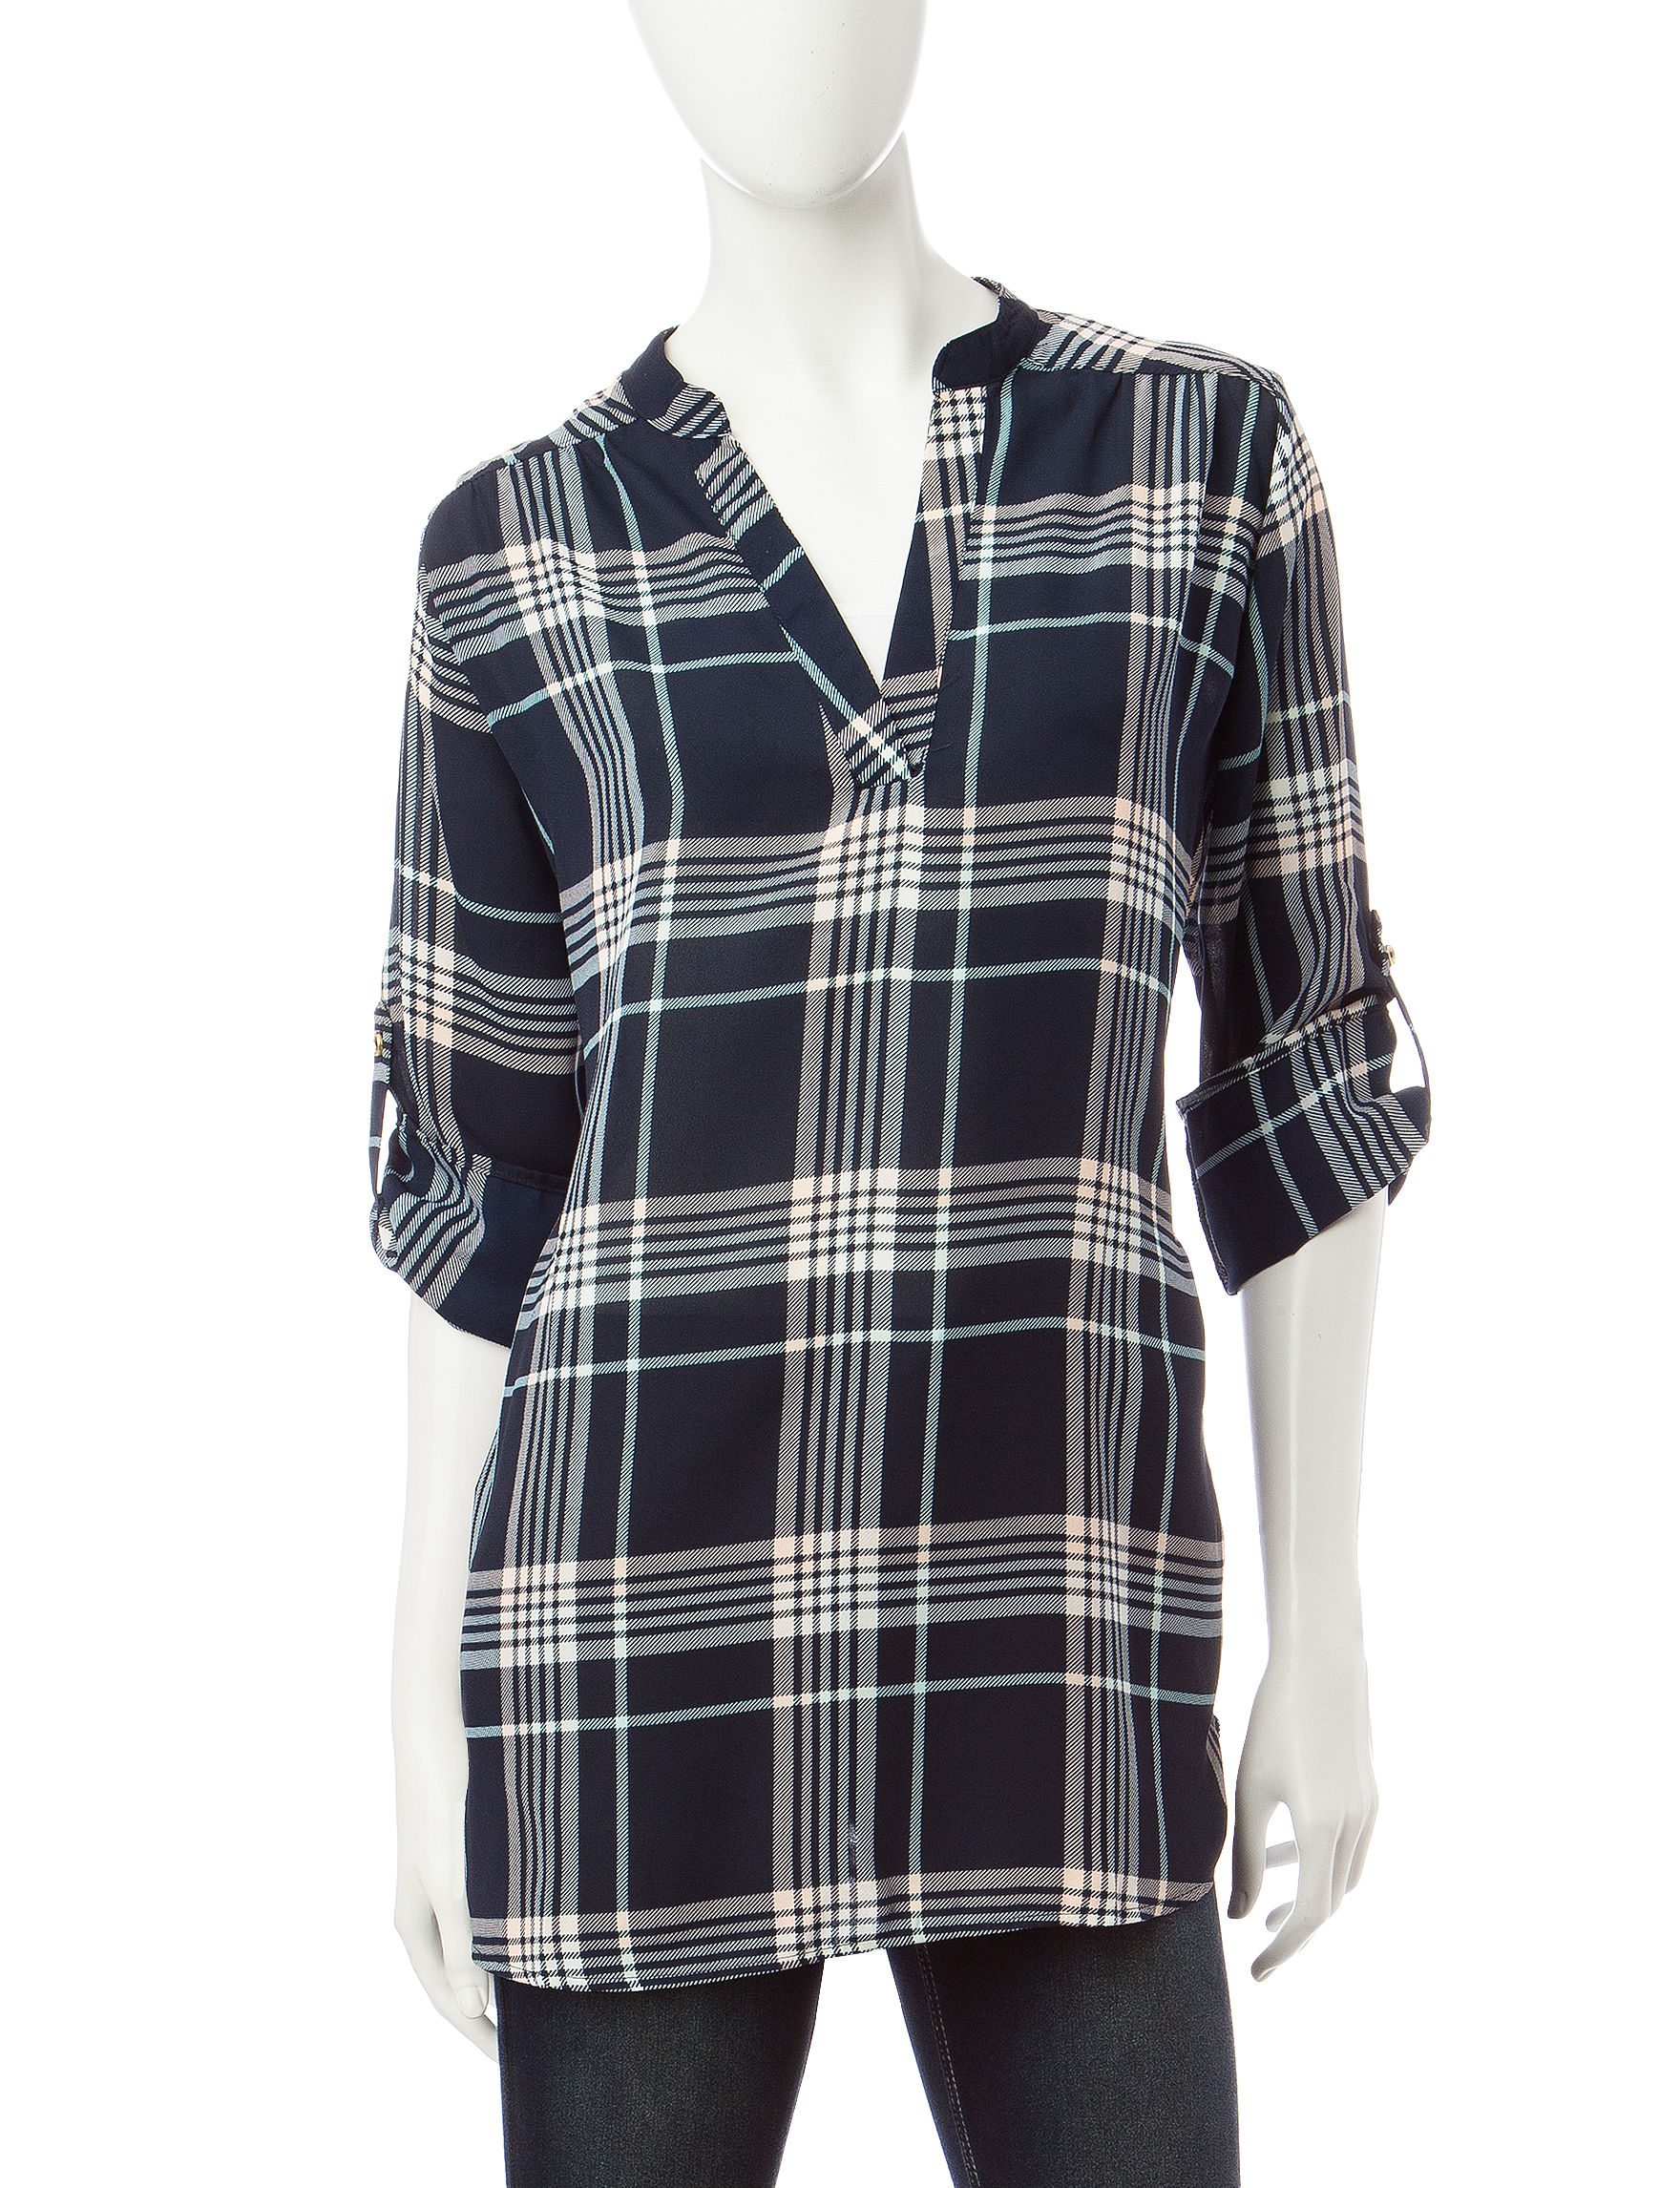 Wishful Park Navy Plaid Shirts & Blouses